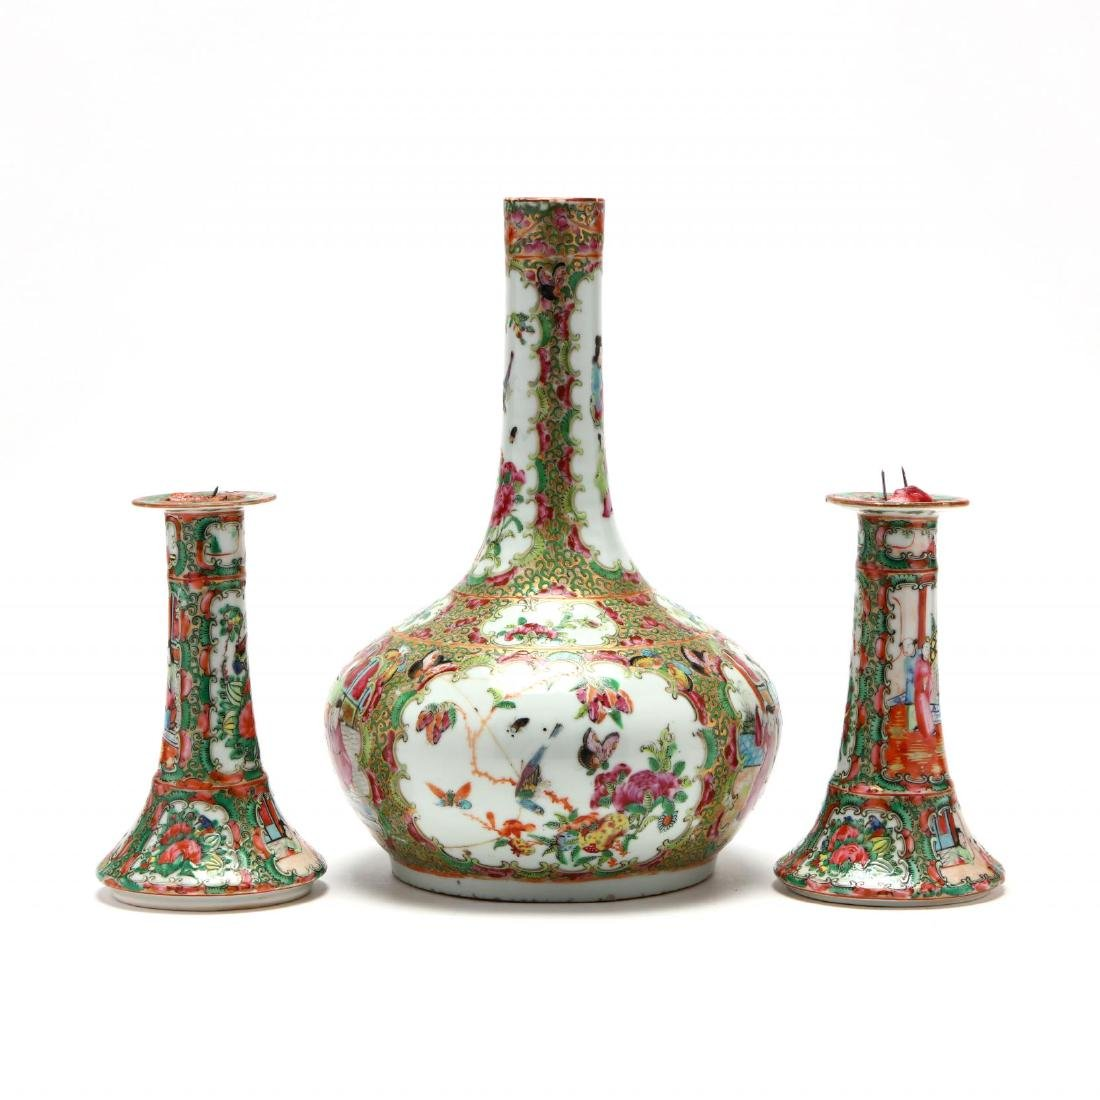 A Chinese Famille Rose Pair of Candle Sticks and Bottle - 2